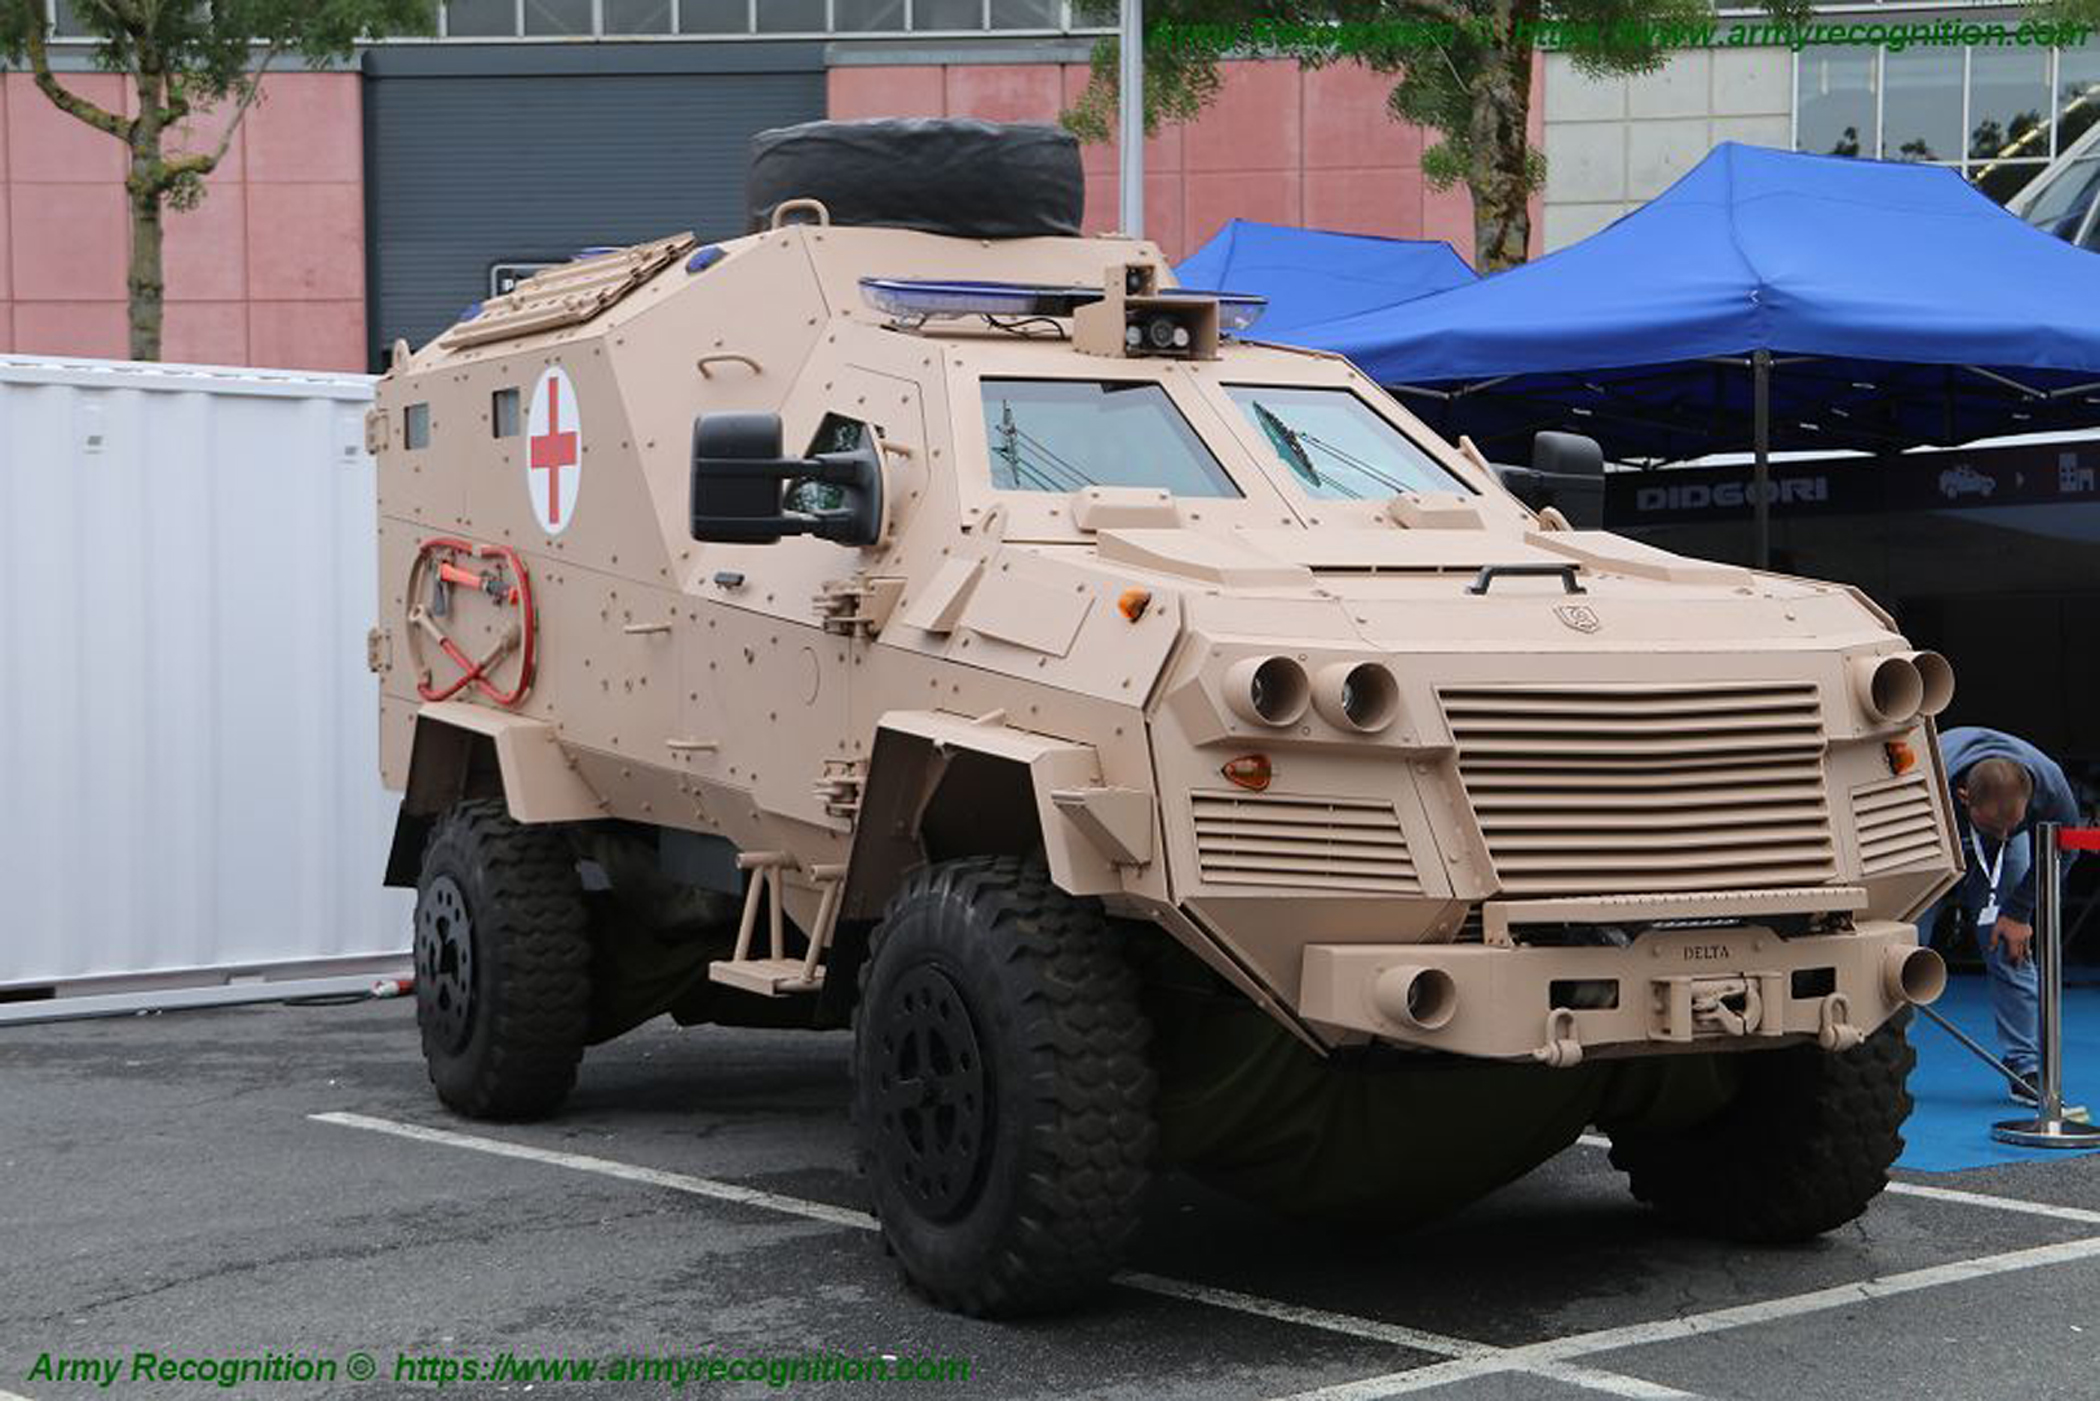 Georgia Μilitary: News and Modernisation - Page 4 Georgian_defense_industry_presents_didgori_4x4_ambulance_armored_at_eurosatory_2018_925_001-jpg